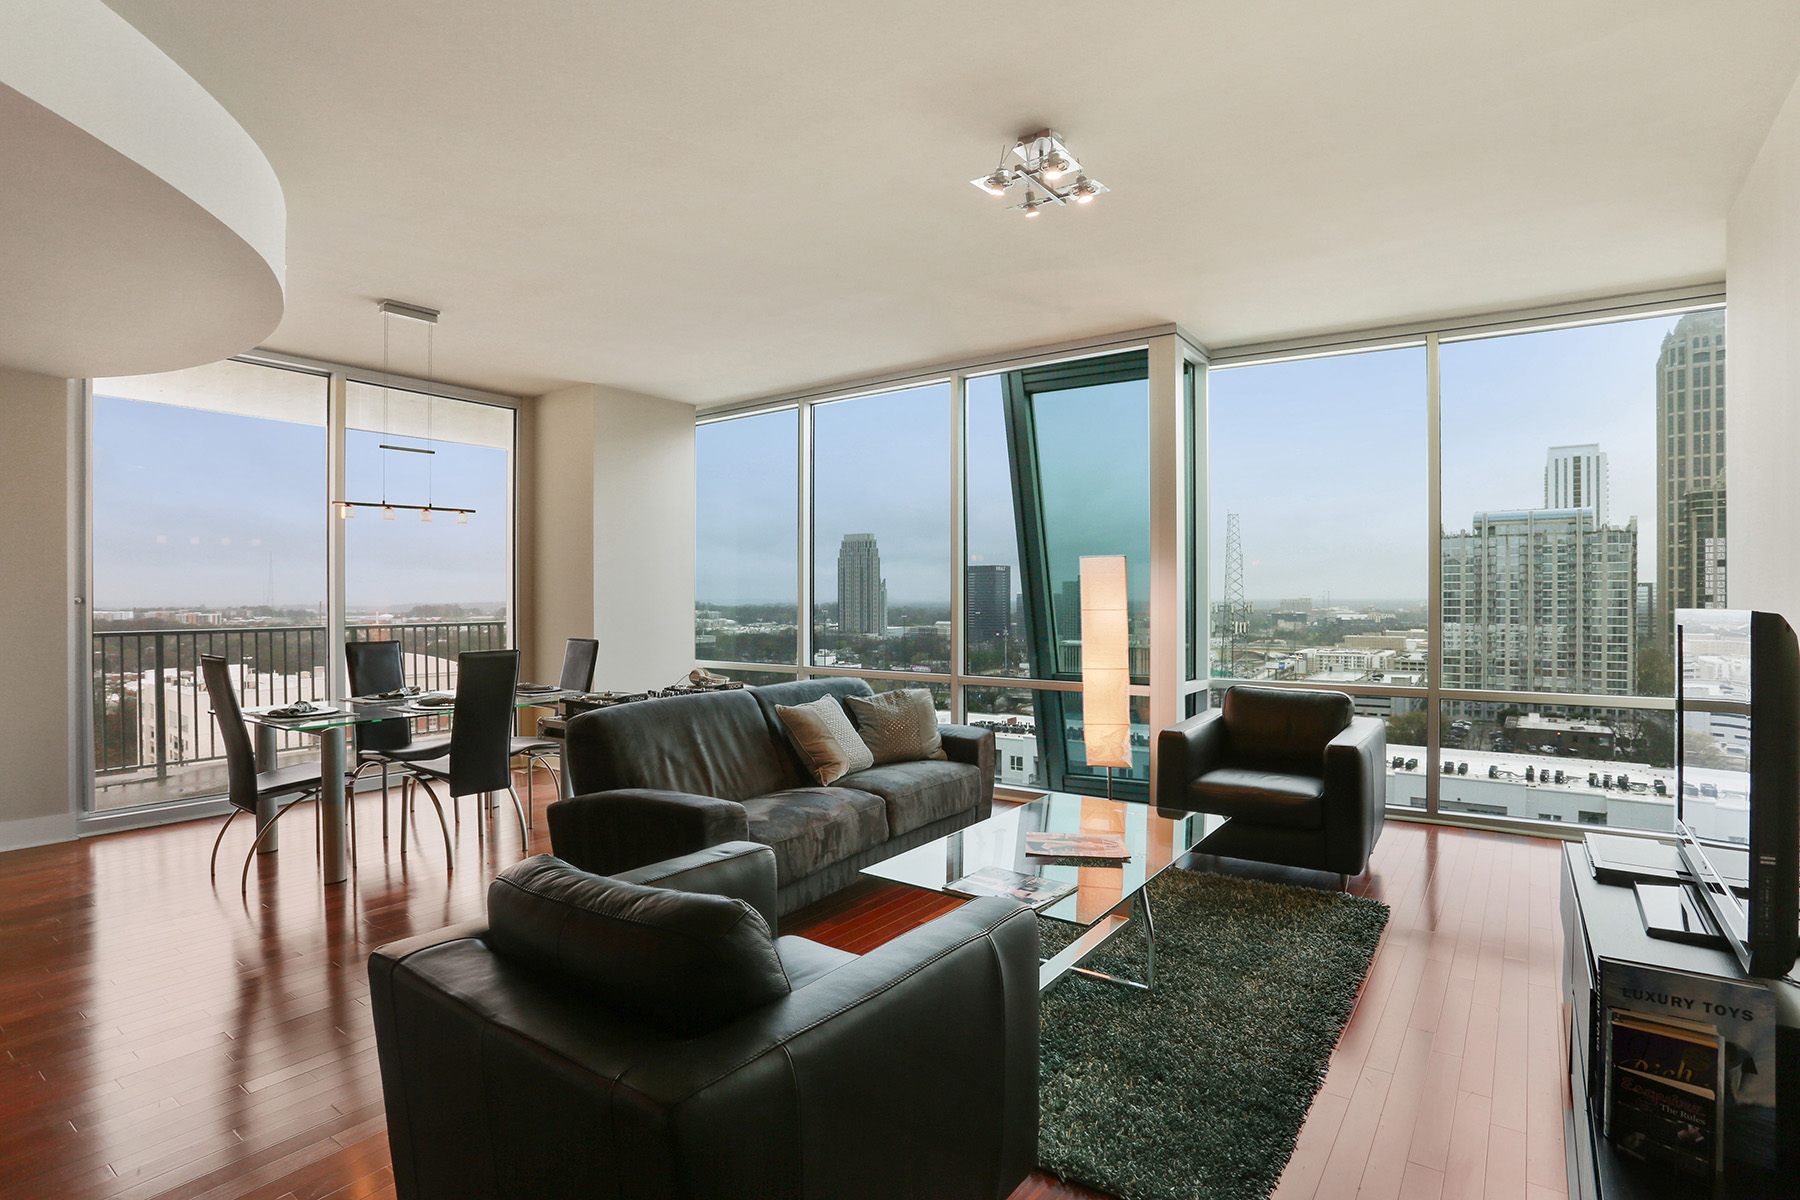 Condominium for Sale at Midtown Condo With Stunning Views 20 10th Street #1604, Atlanta, Georgia, 30309 United States